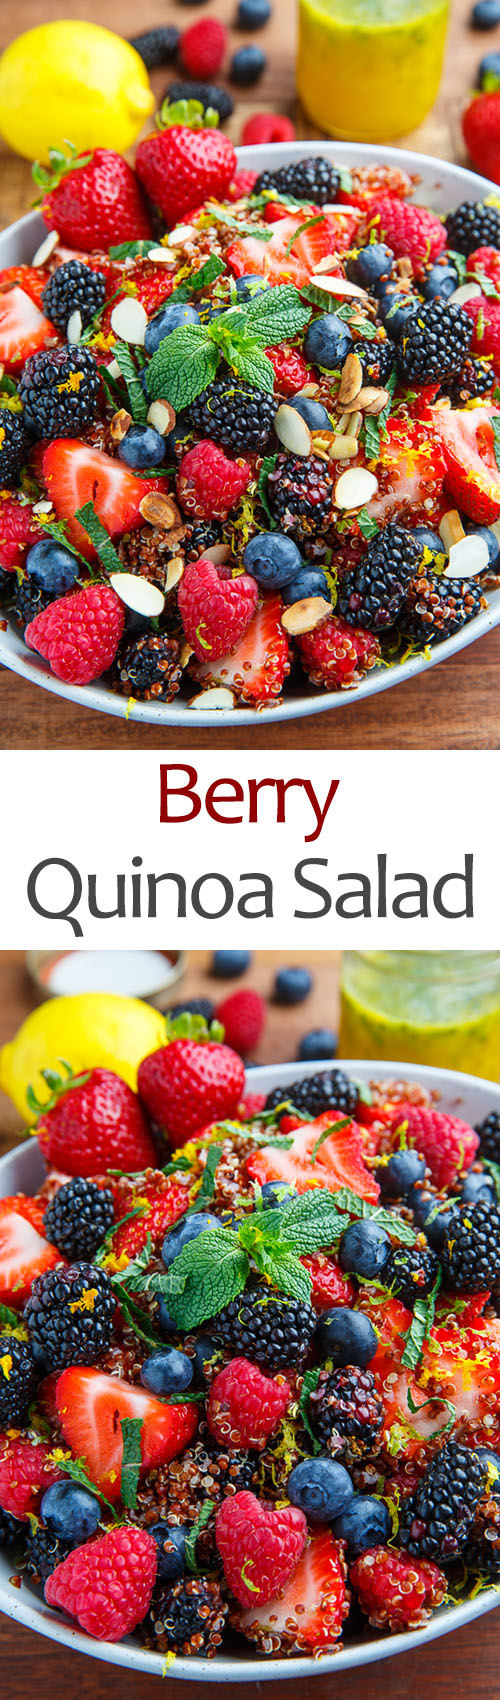 Berry Quinoa Salad